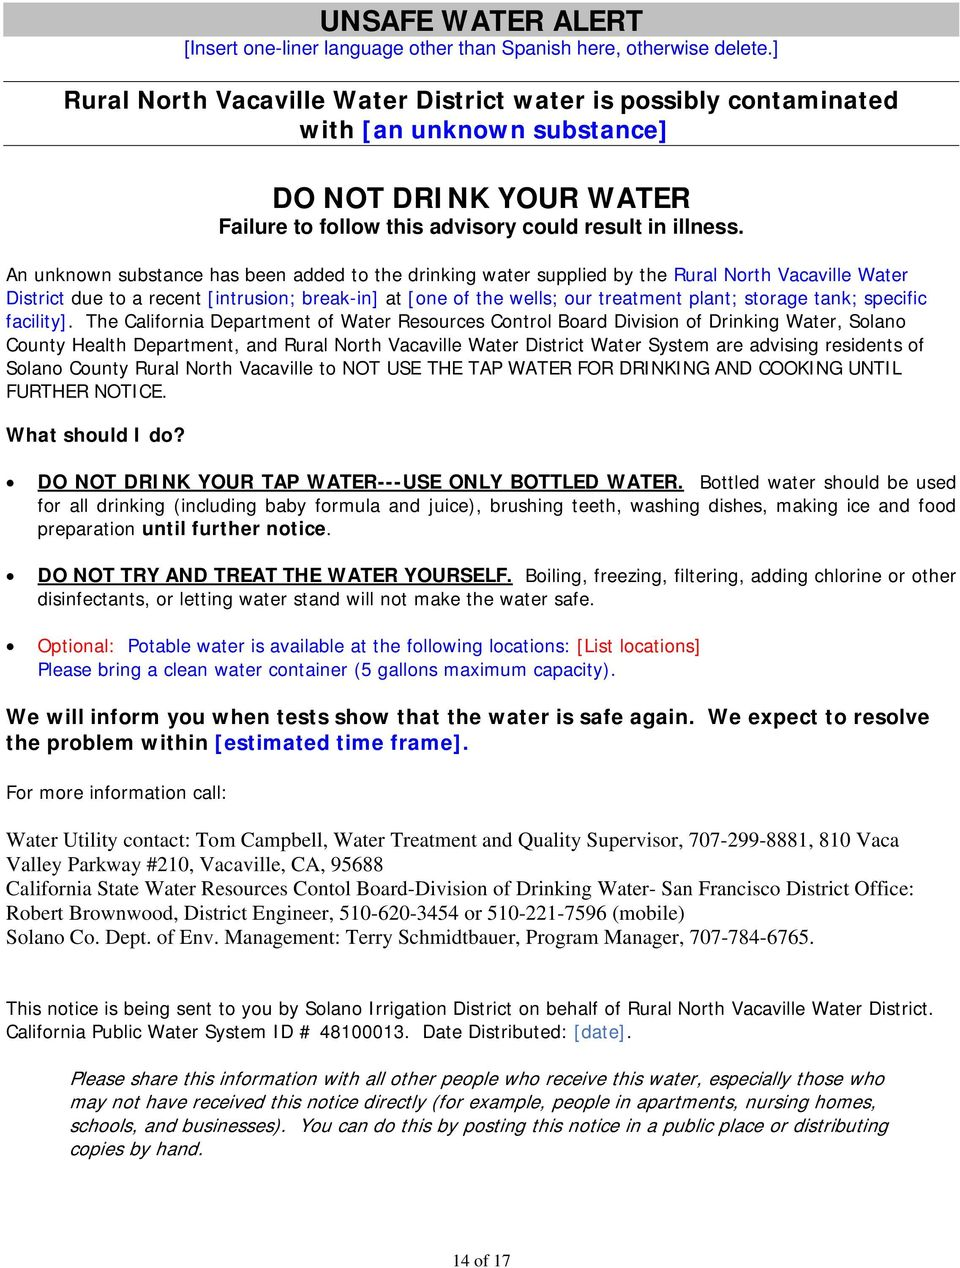 Water supply and sewage do it yourself: a selection of sites